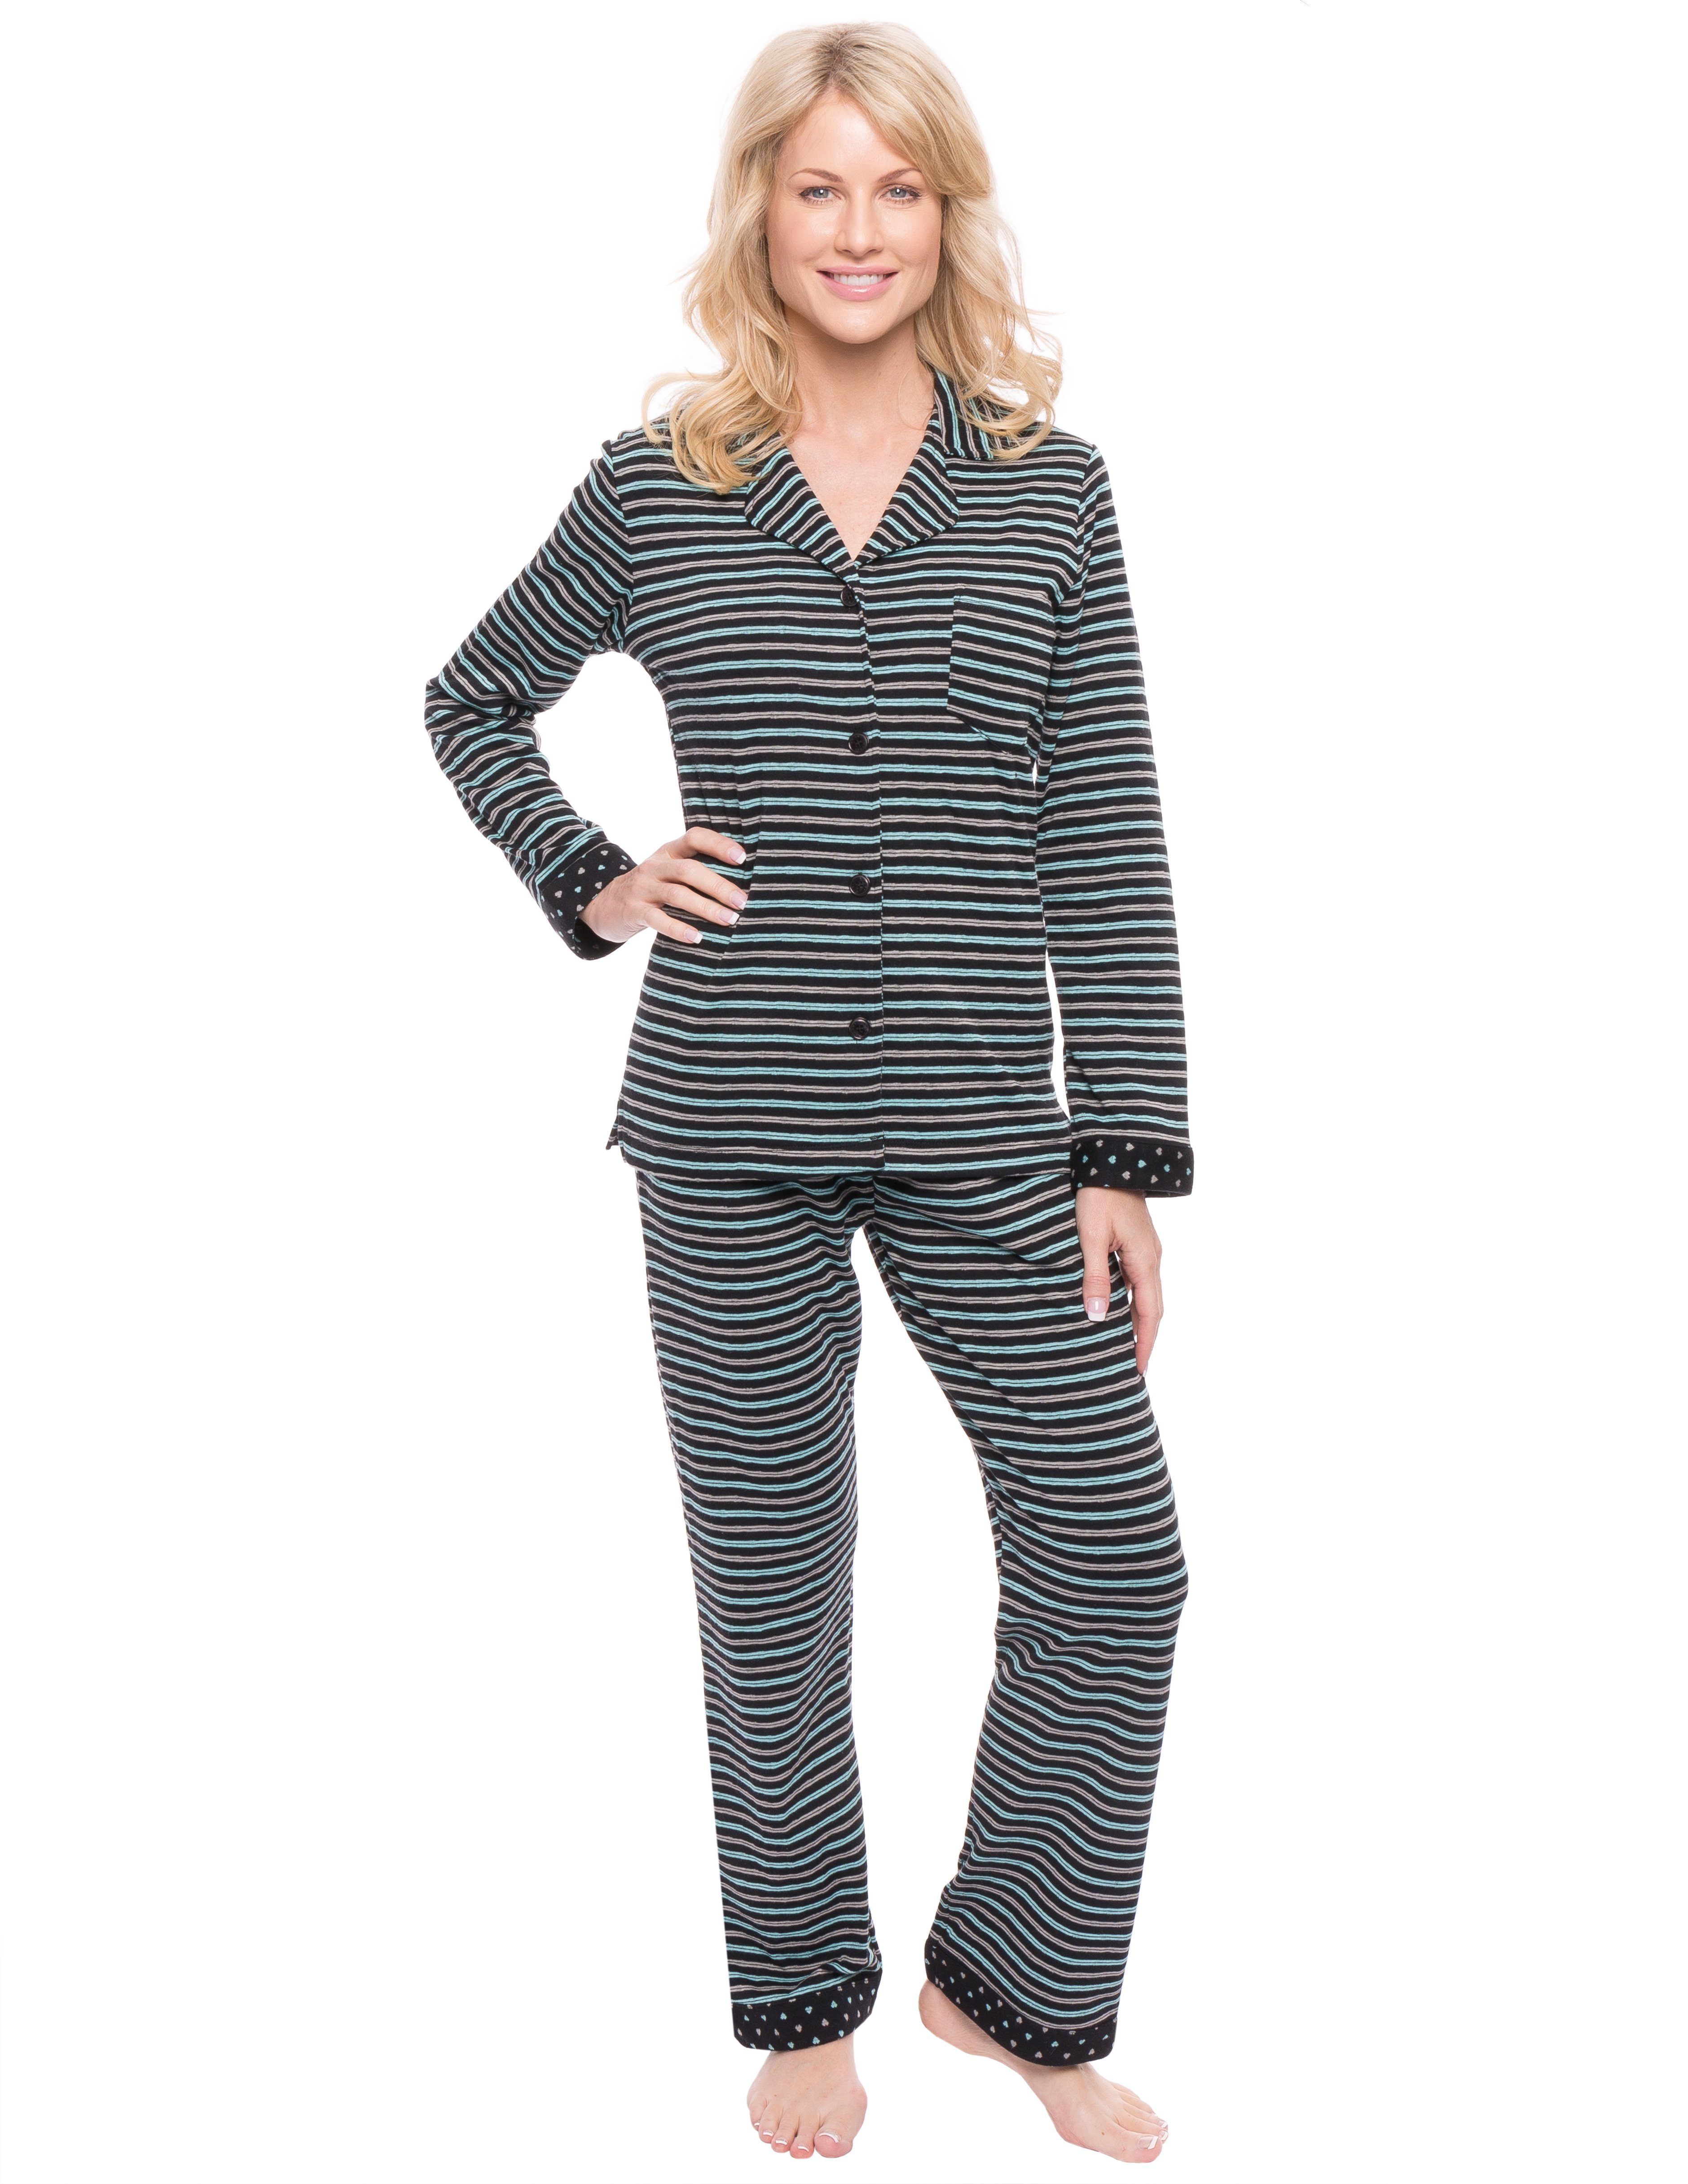 Women's Double Layer Knit Jersey Pajama Sleepwear Set